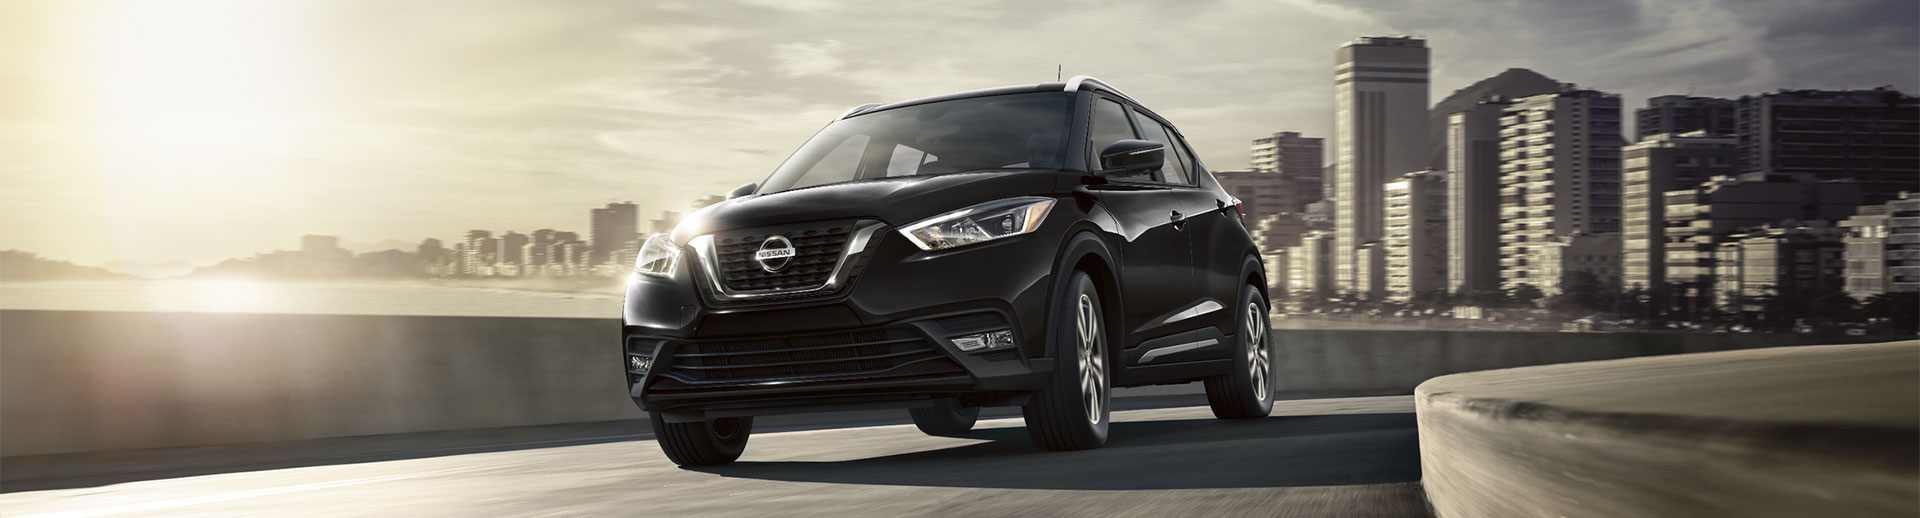 2021 Nissan Kicks Lifestyle Photo